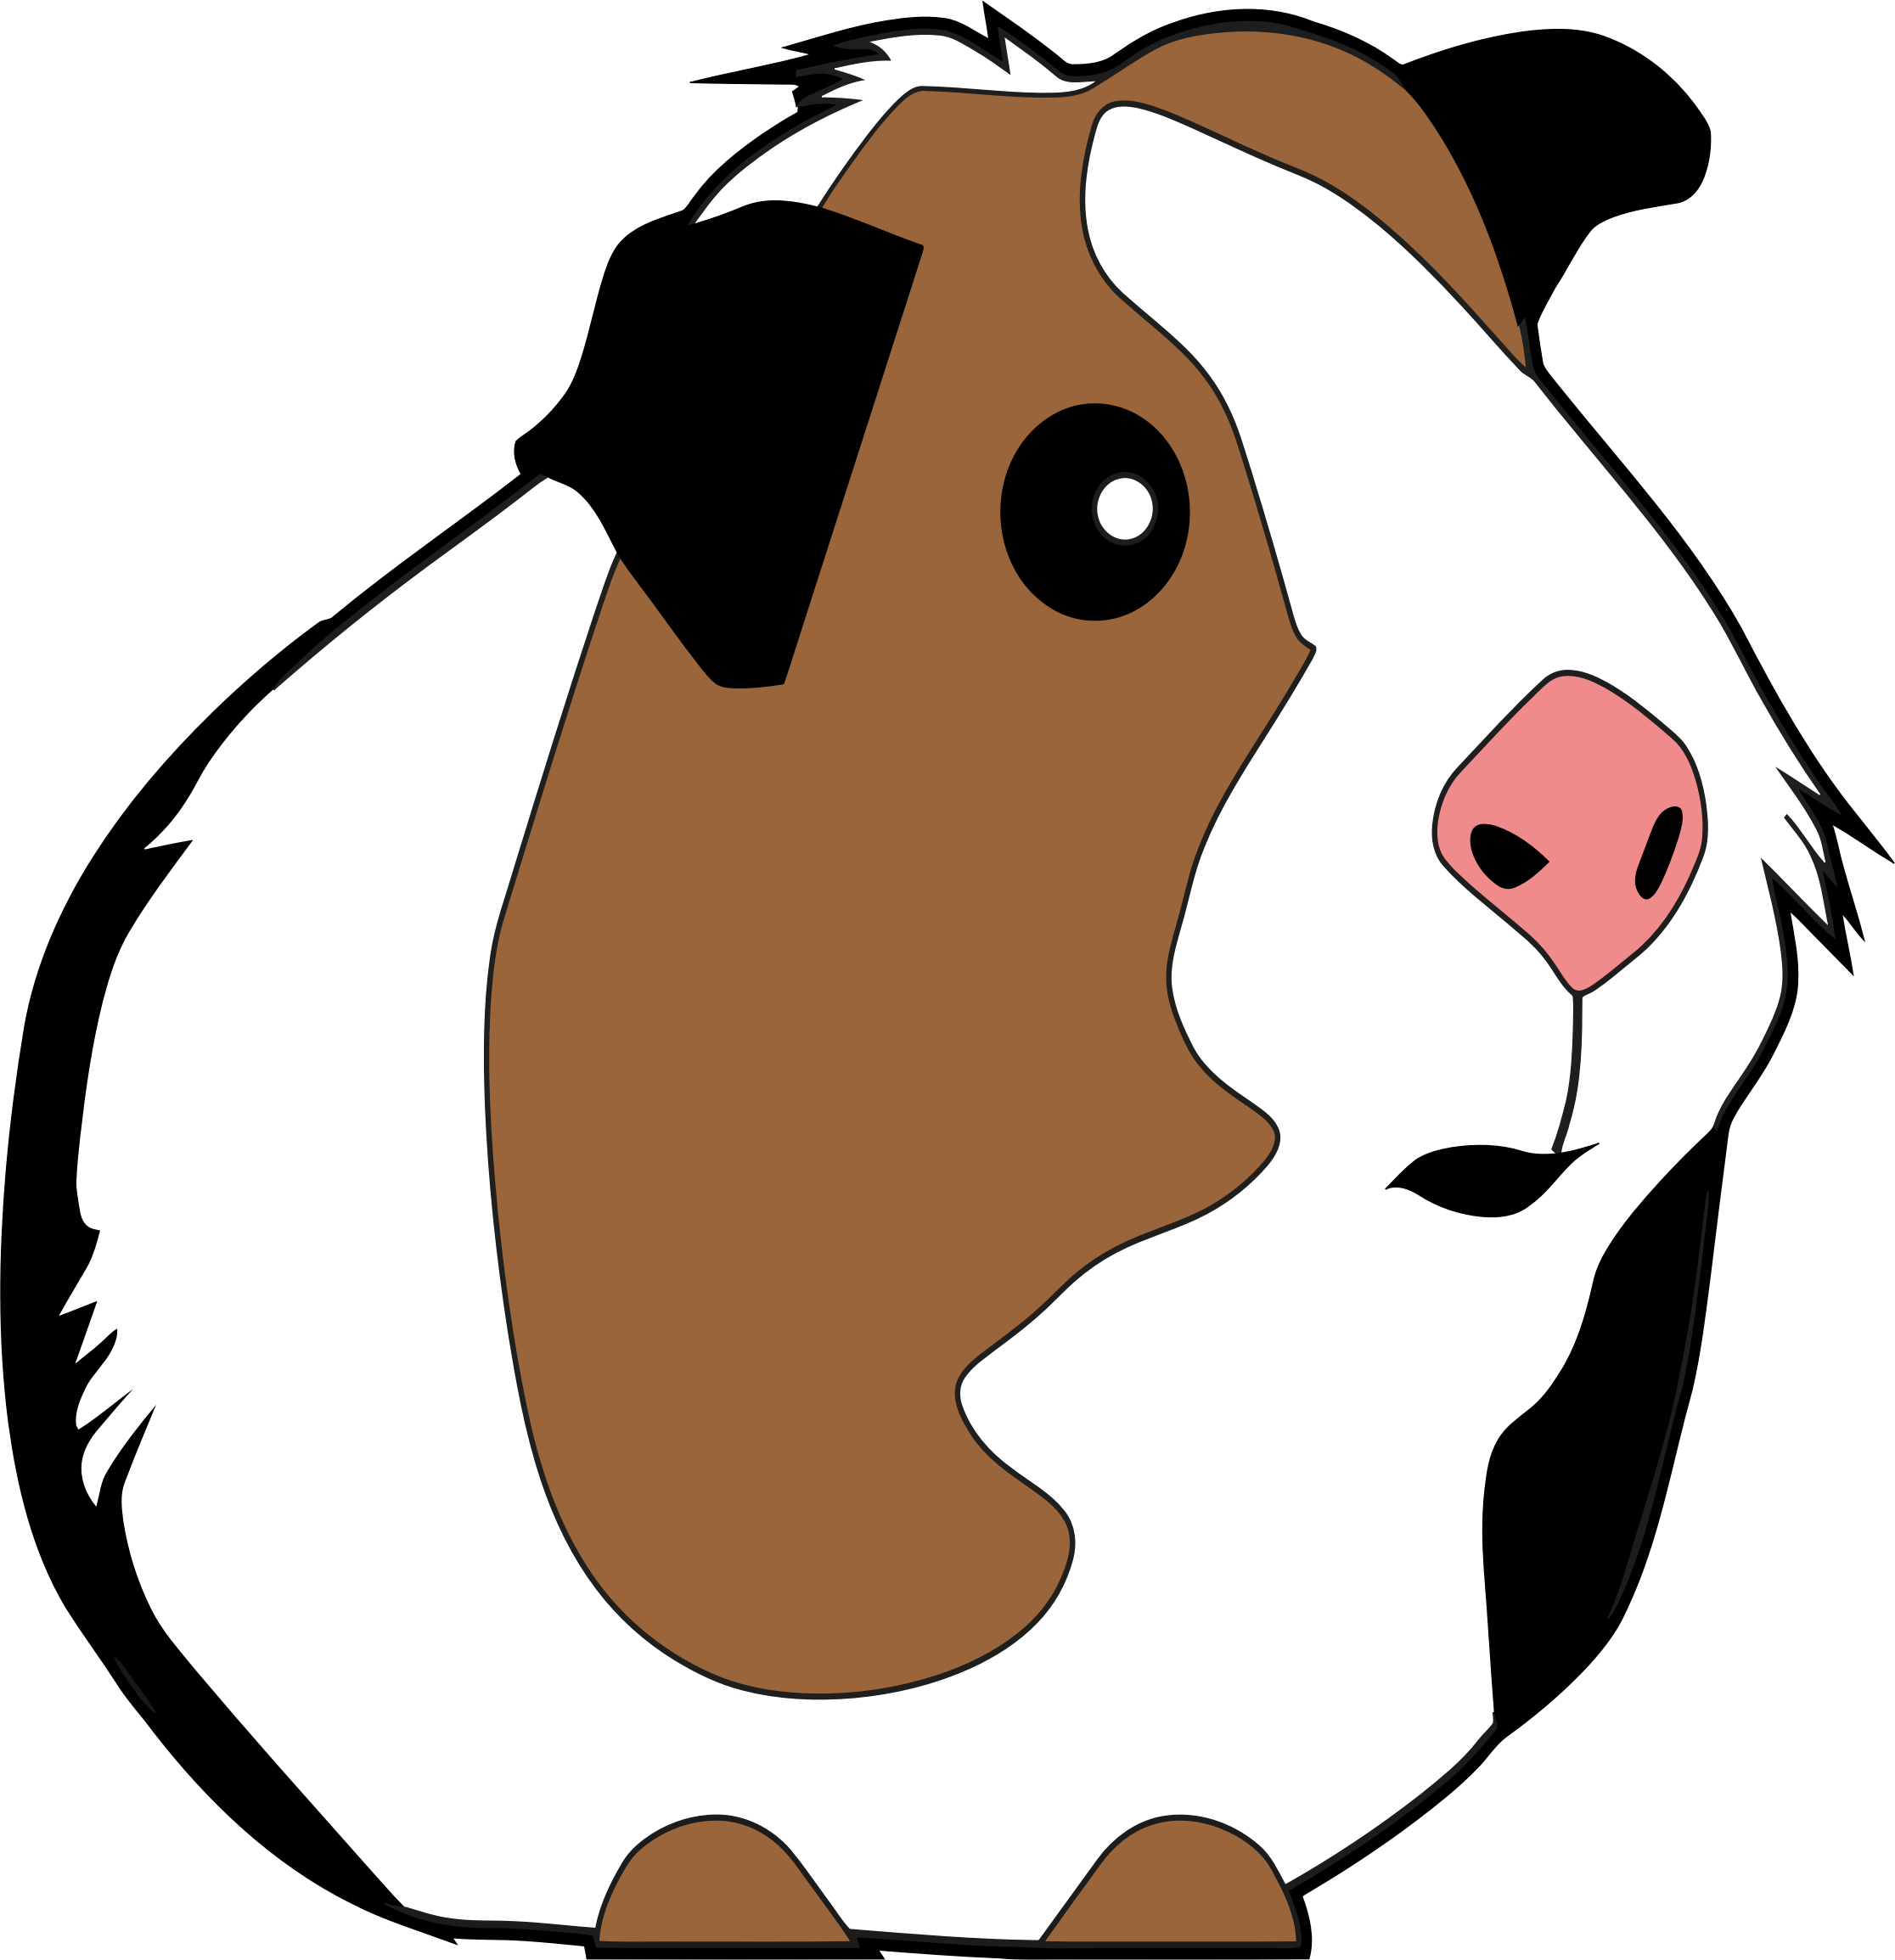 Guinea Pig Illustration by GDJ